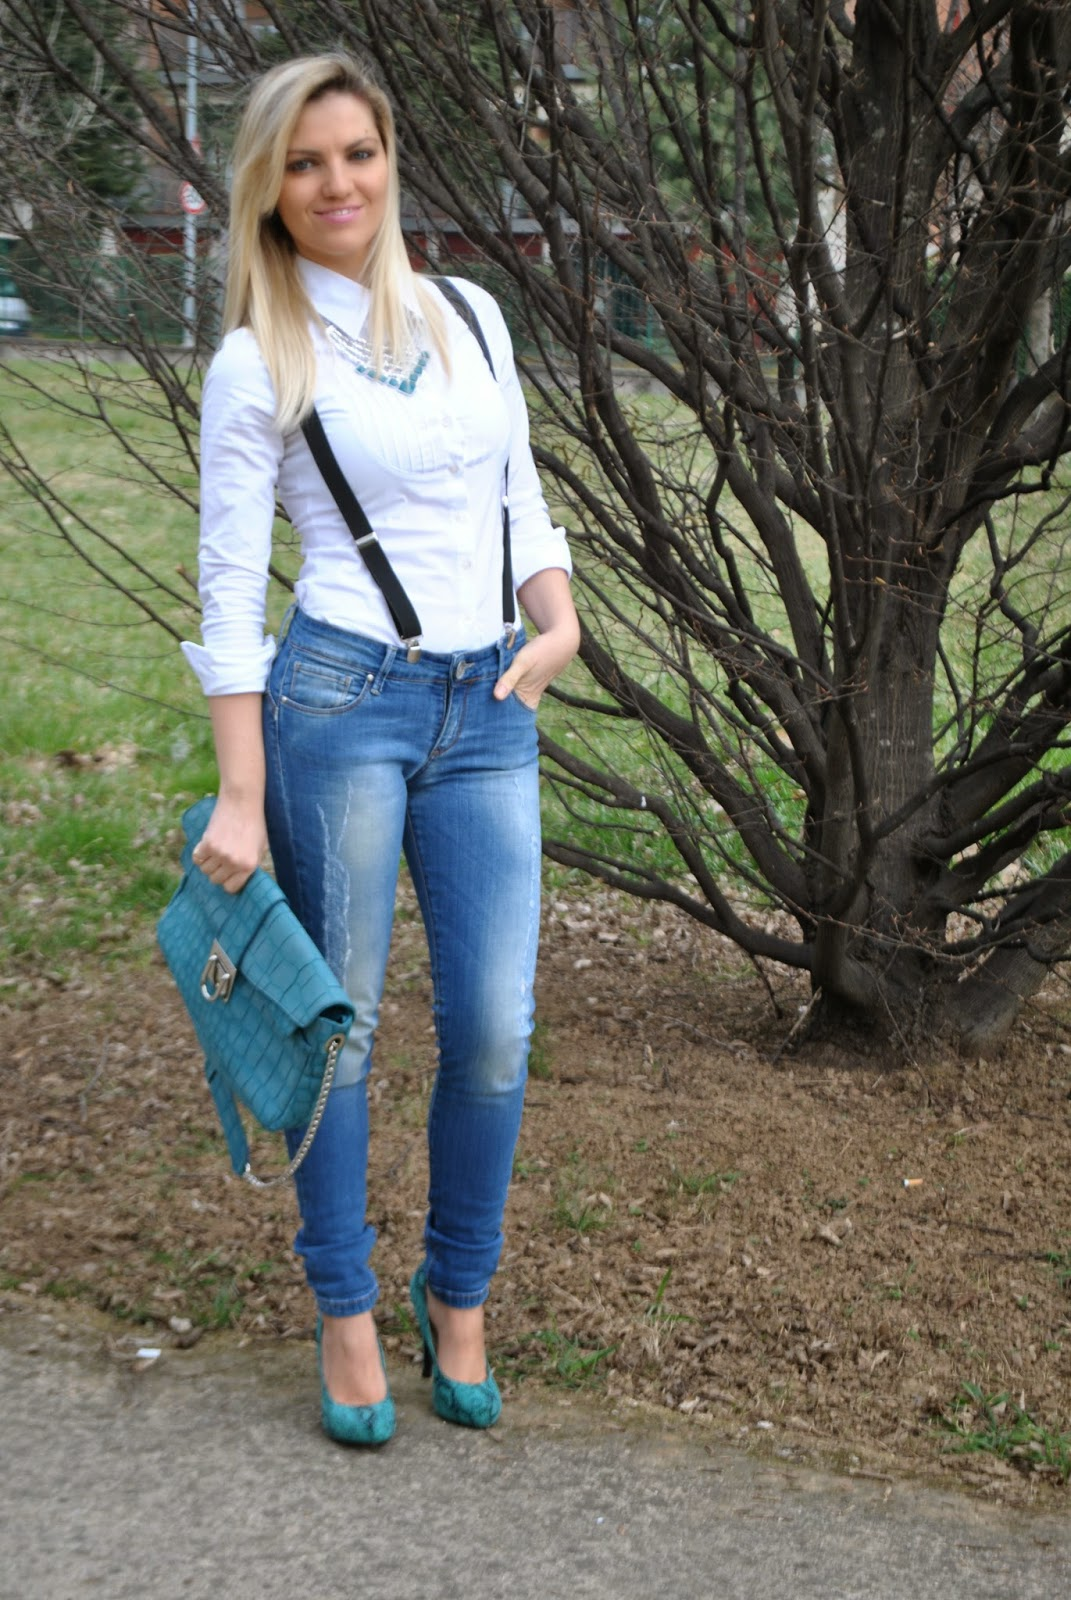 outfit camicia bianca outfit bretelle outfit jeans skinny ripped mariafelicia magno colorblock by felym mariafelicia magno fashion blogger come abbinare la camicia bianca come abbinare le bretelle come abbinare i jeans skinny scarpe pitonate scarpe azzurre borsa turchese collana majique blogger italiane fashion blogger italiane ragazze bionde milano outfit marzo 2015 outfit primaverili outfit primaverili donna white shirt outfit how to wear white shirt skinny jeans outfit how to wear jeans and heels outfit jeans e tacchi blonde girls blondie blonde hair fashion bloggers italy majique london necklace